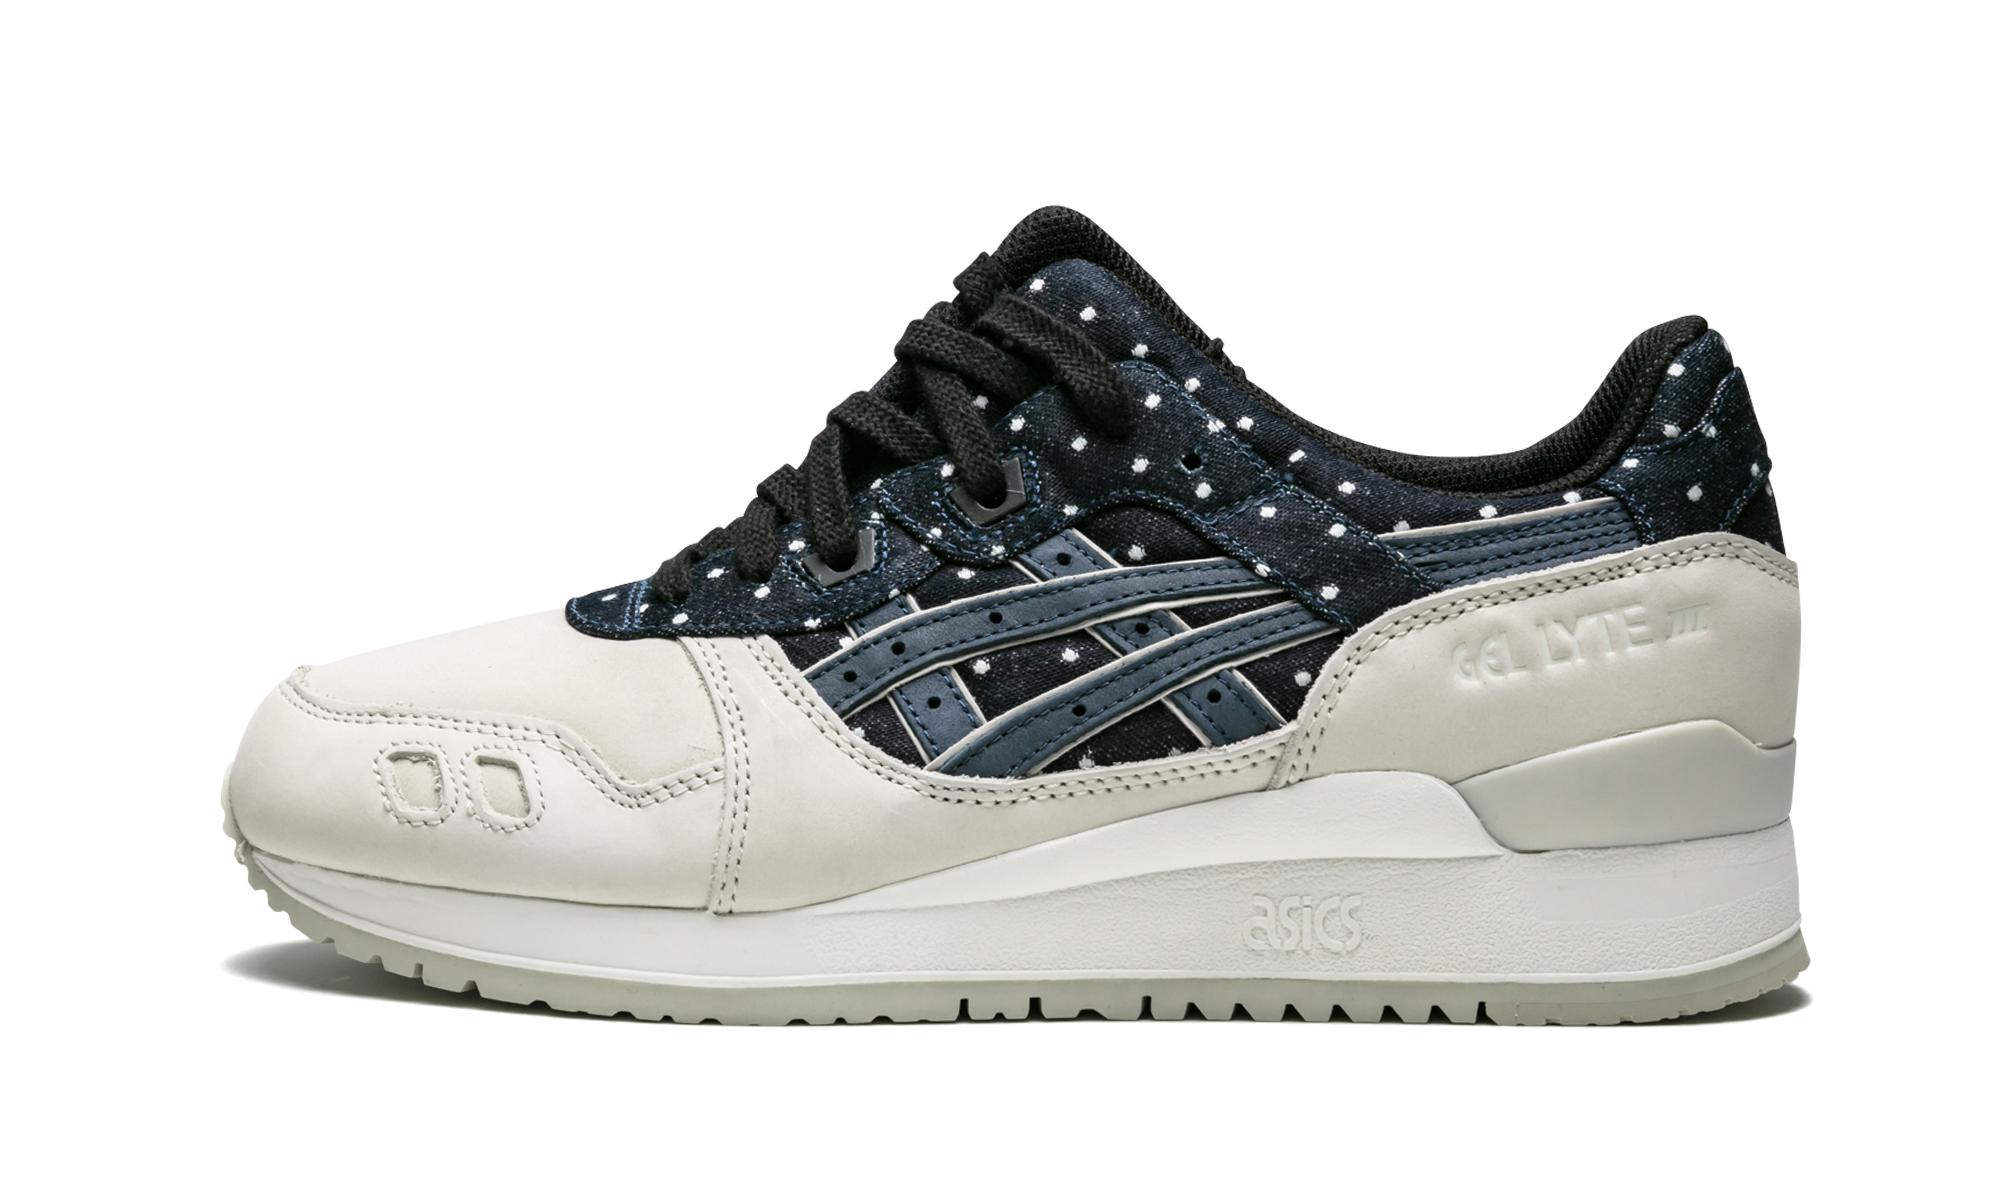 f5832359 Asics - Multicolor Gel-lyte 3 for Men - Lyst. View fullscreen